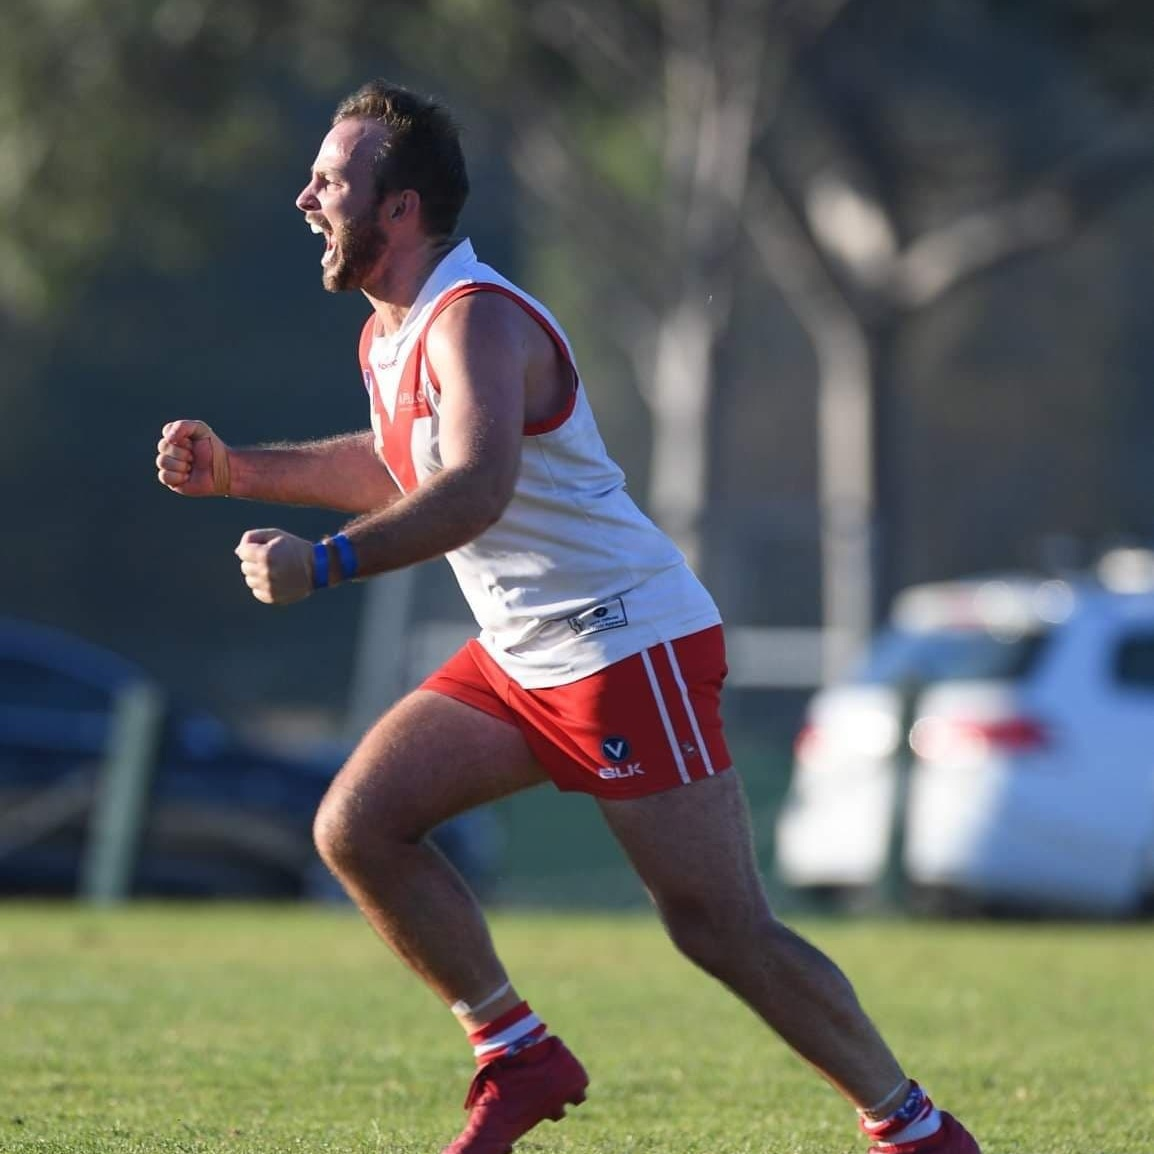 Jordy  Jordy has been around the the club either training or playing for 16 years, he is captain for this 2019 season, after the 2018 season which was a very successful campaign, leading to finals for both Senior Men's teams.